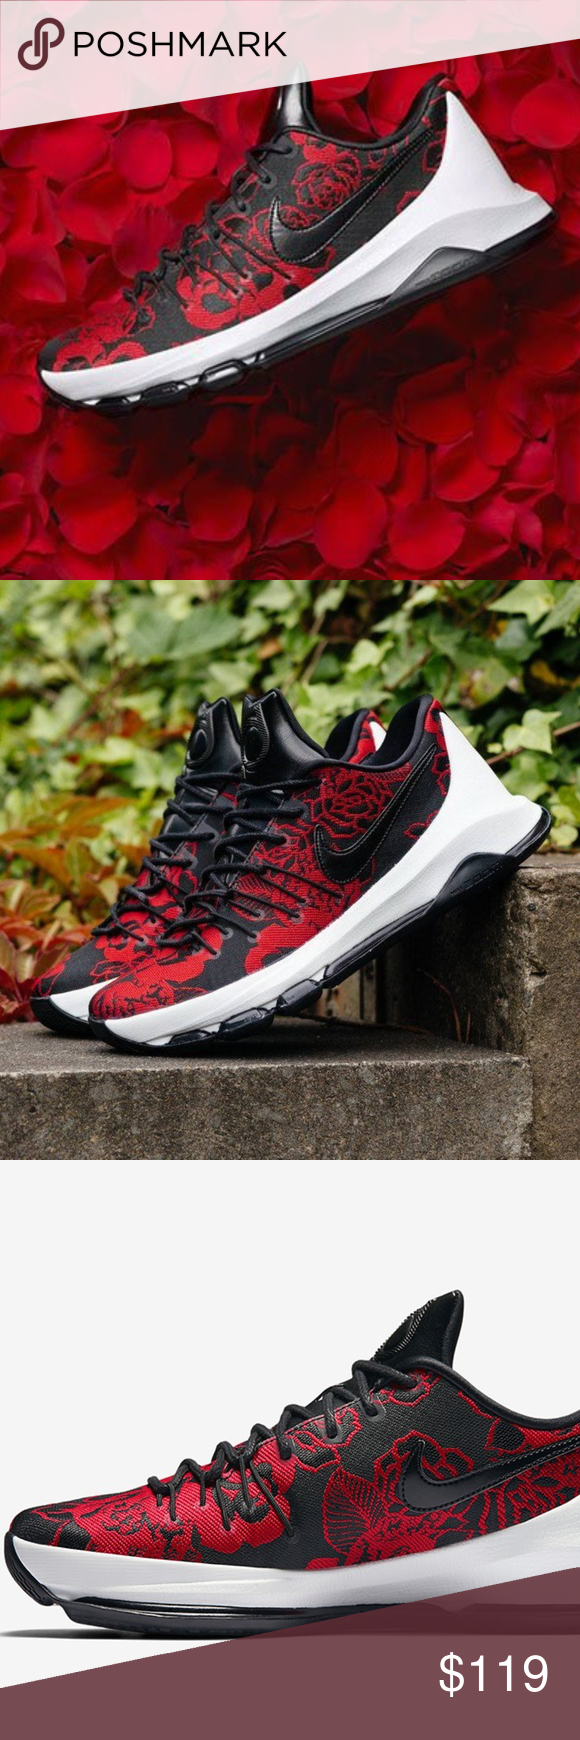 detailed look c4805 3d5c2 Nike KD 8 EXT Red Floral Mothers Day Kevin Durant Nike and Kevin Durant  send a